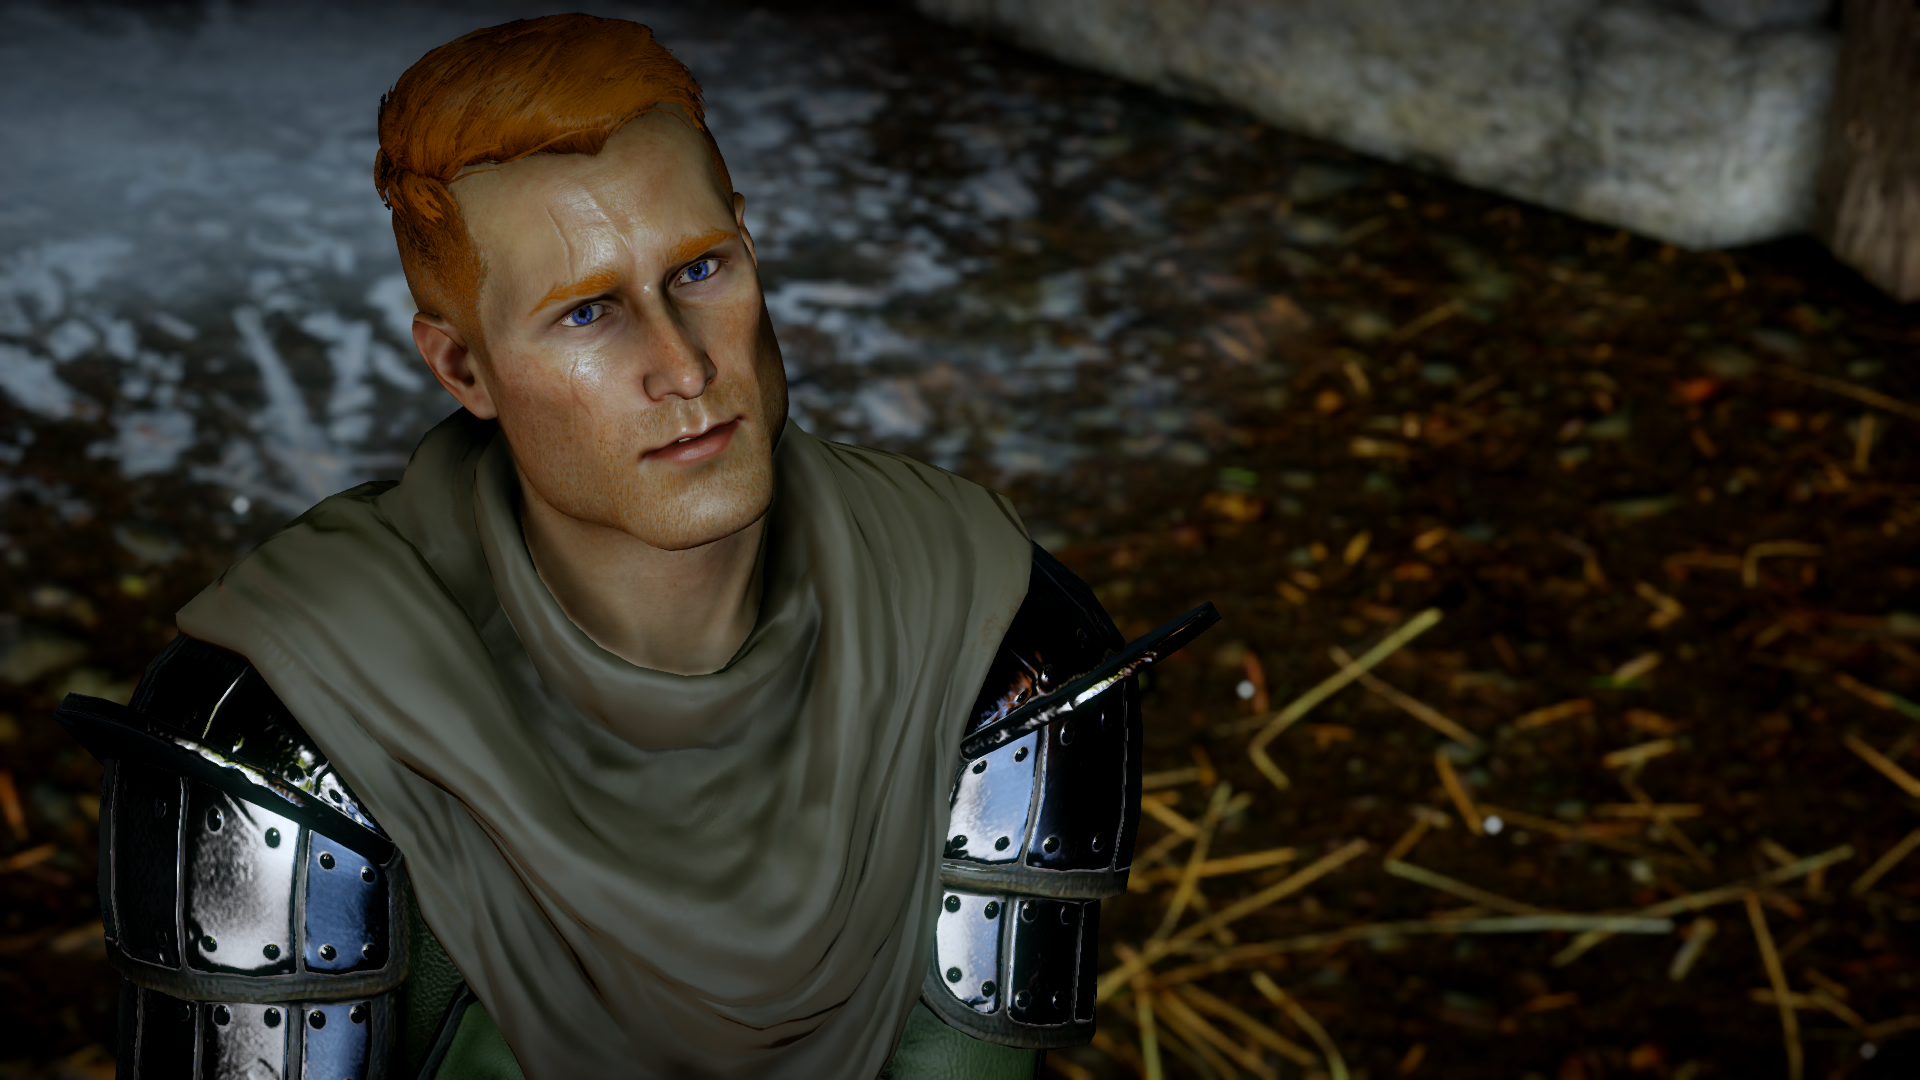 Inquisitor - Tyrant by agentsniper